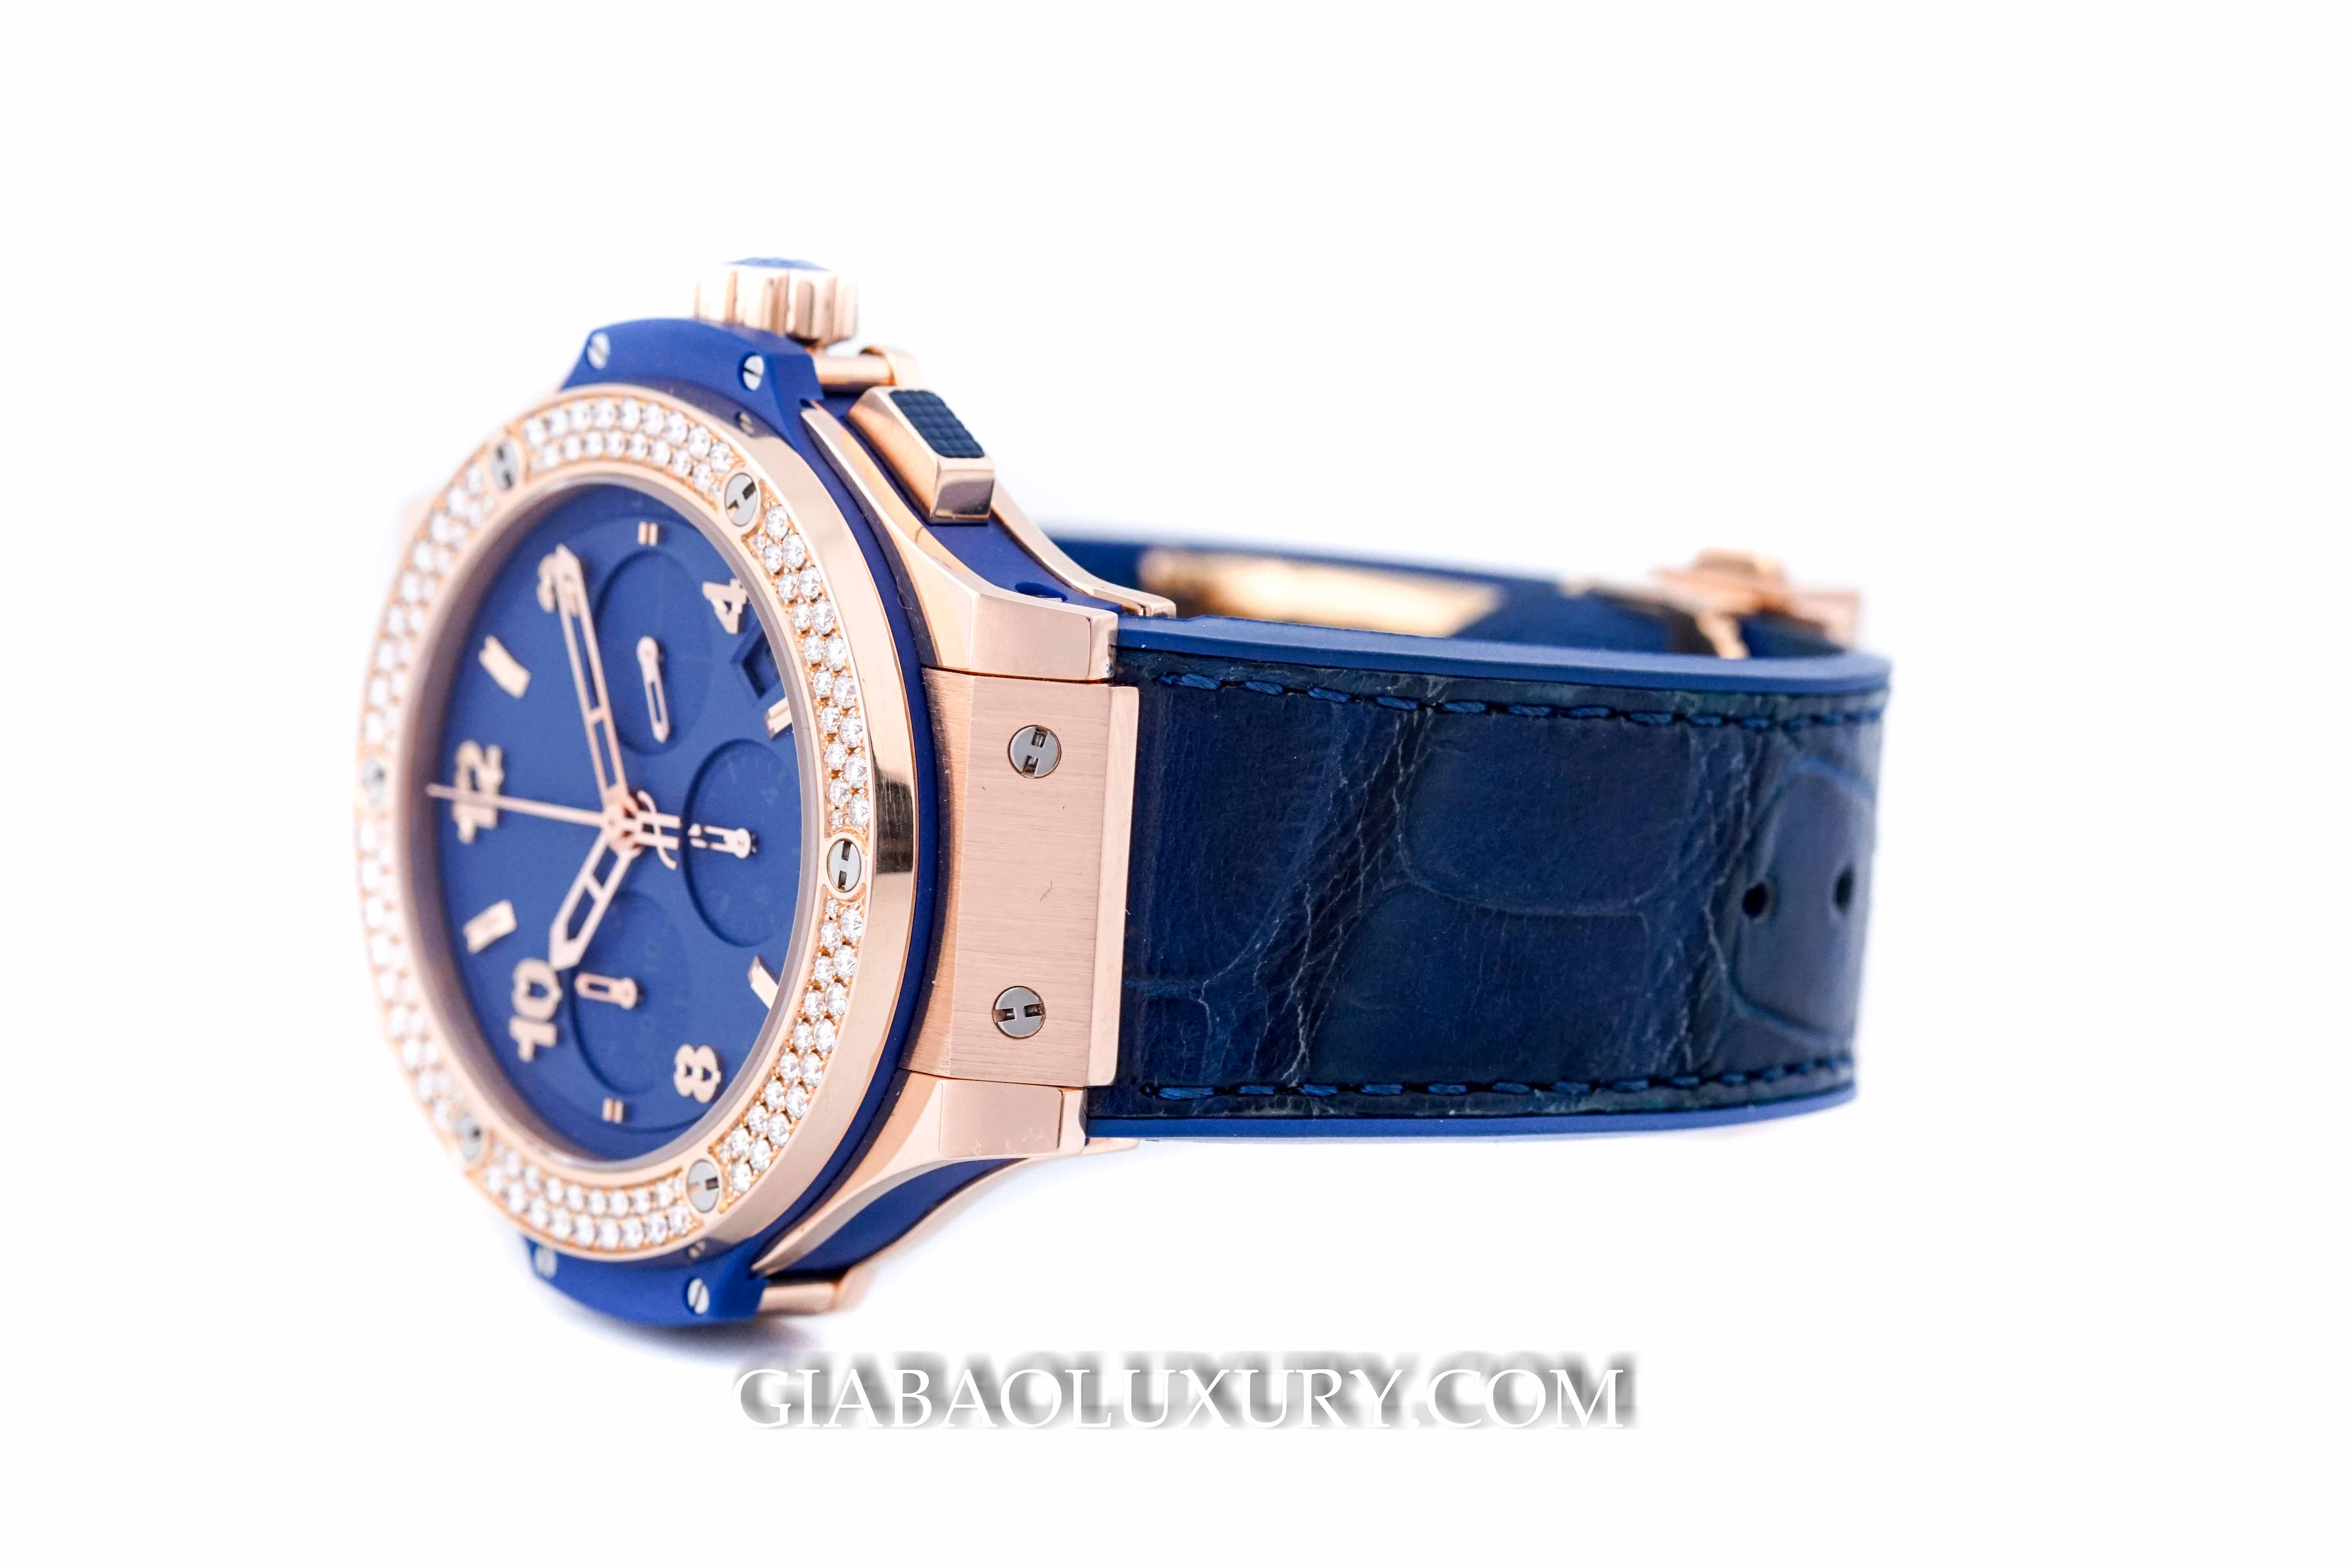 Đồng Hồ Hublot Big Bang Tutti Frutti Blue 41mm 341.PL.5190.LR.1104